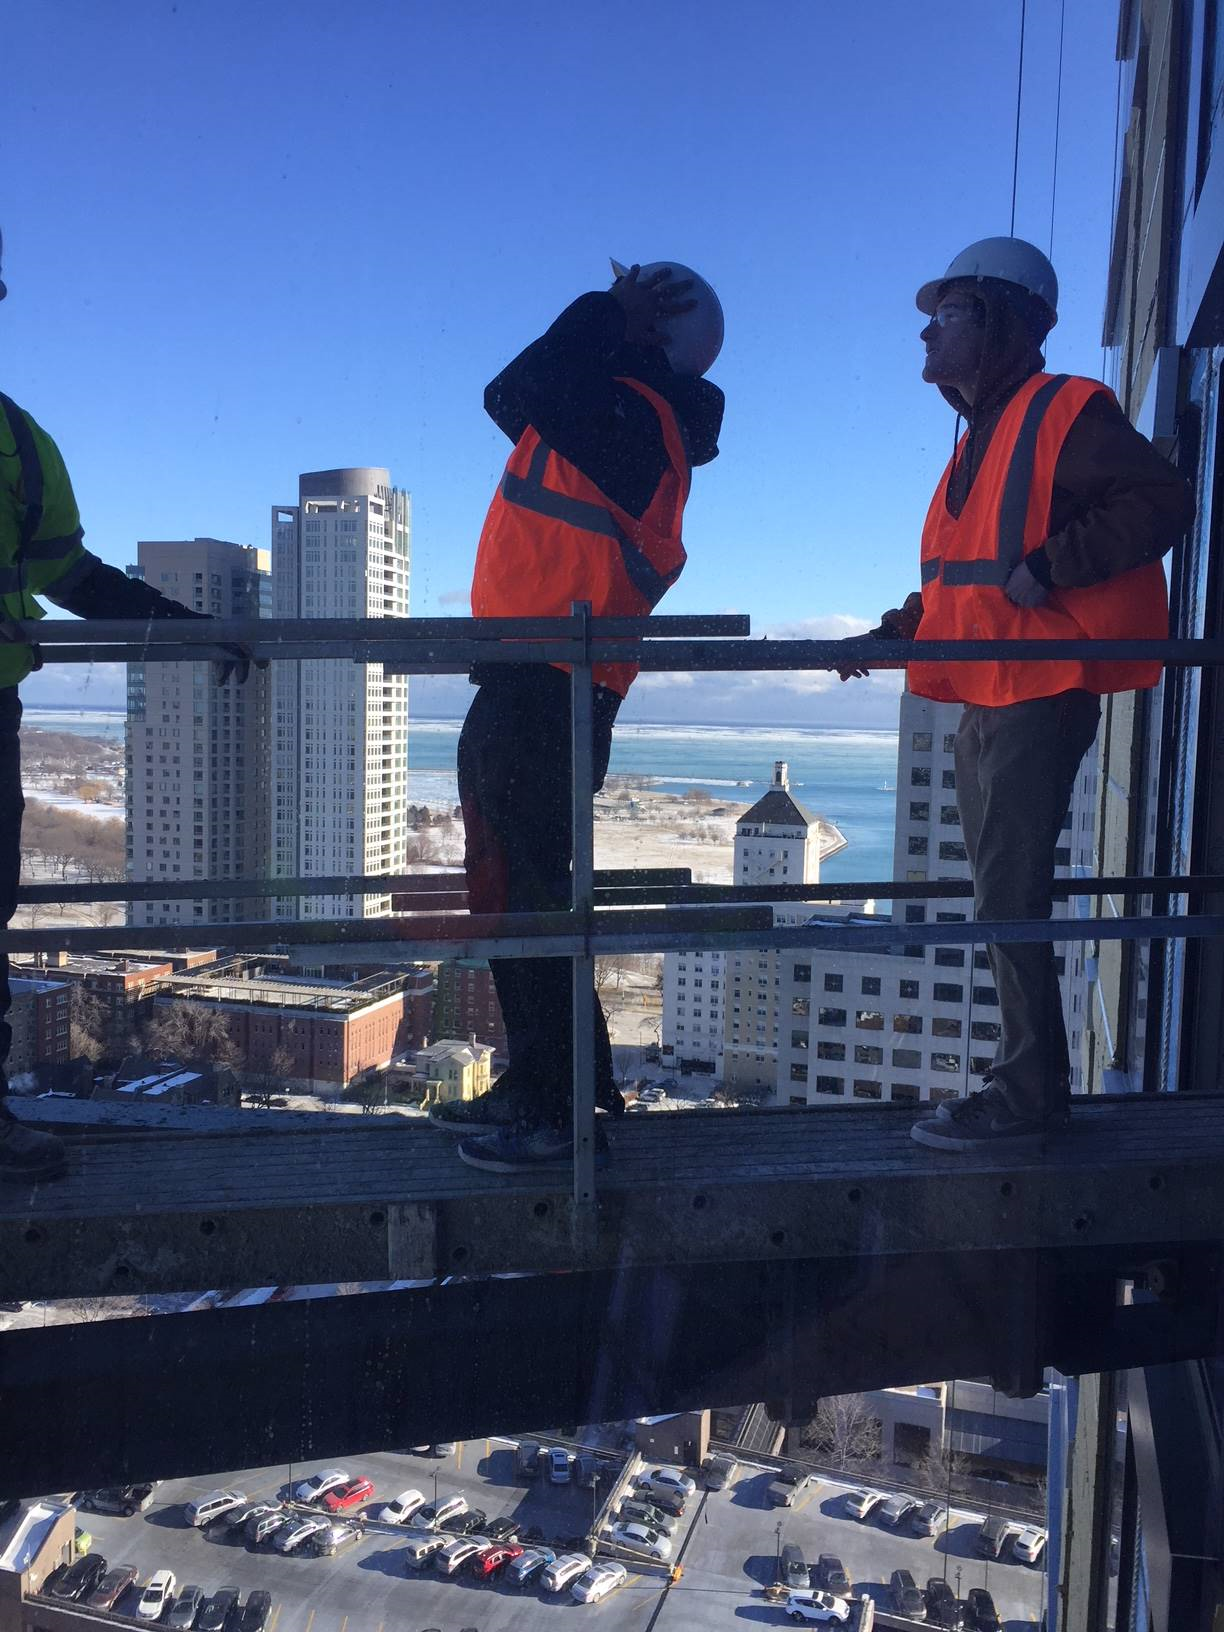 ACE student steps out on high-rise platform